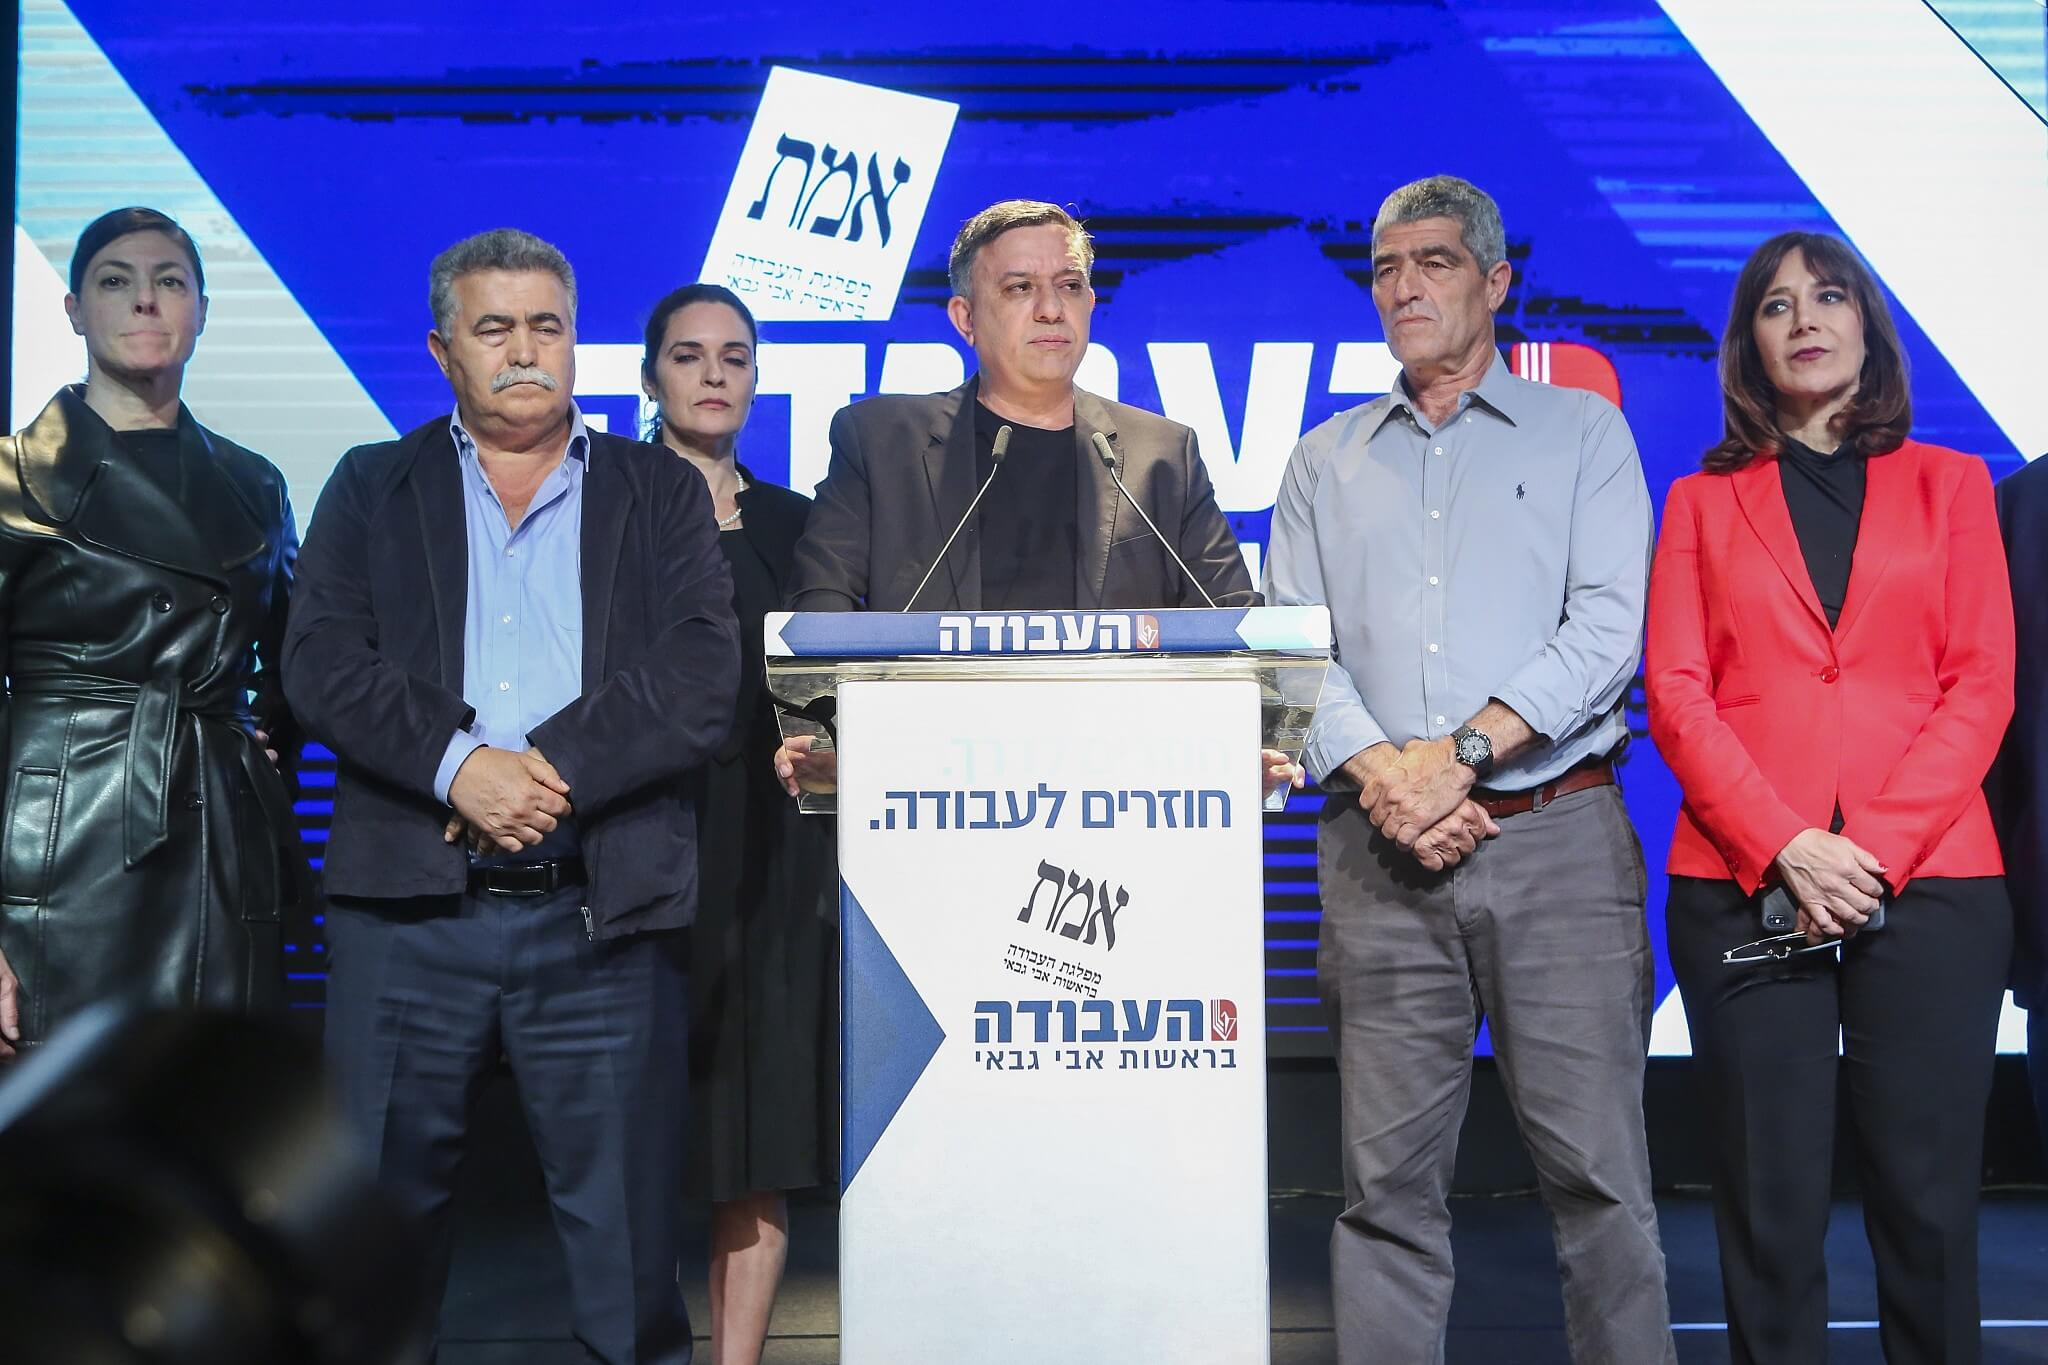 Labor party chairman Avi Gabbay at the podium, with by Tal Russo (R) and former Labor leader Amir Peretz (L), addressing supporters as the results in the general elections were announced in Tel Aviv, on April 09, 2019 (Photo: FLASH90)